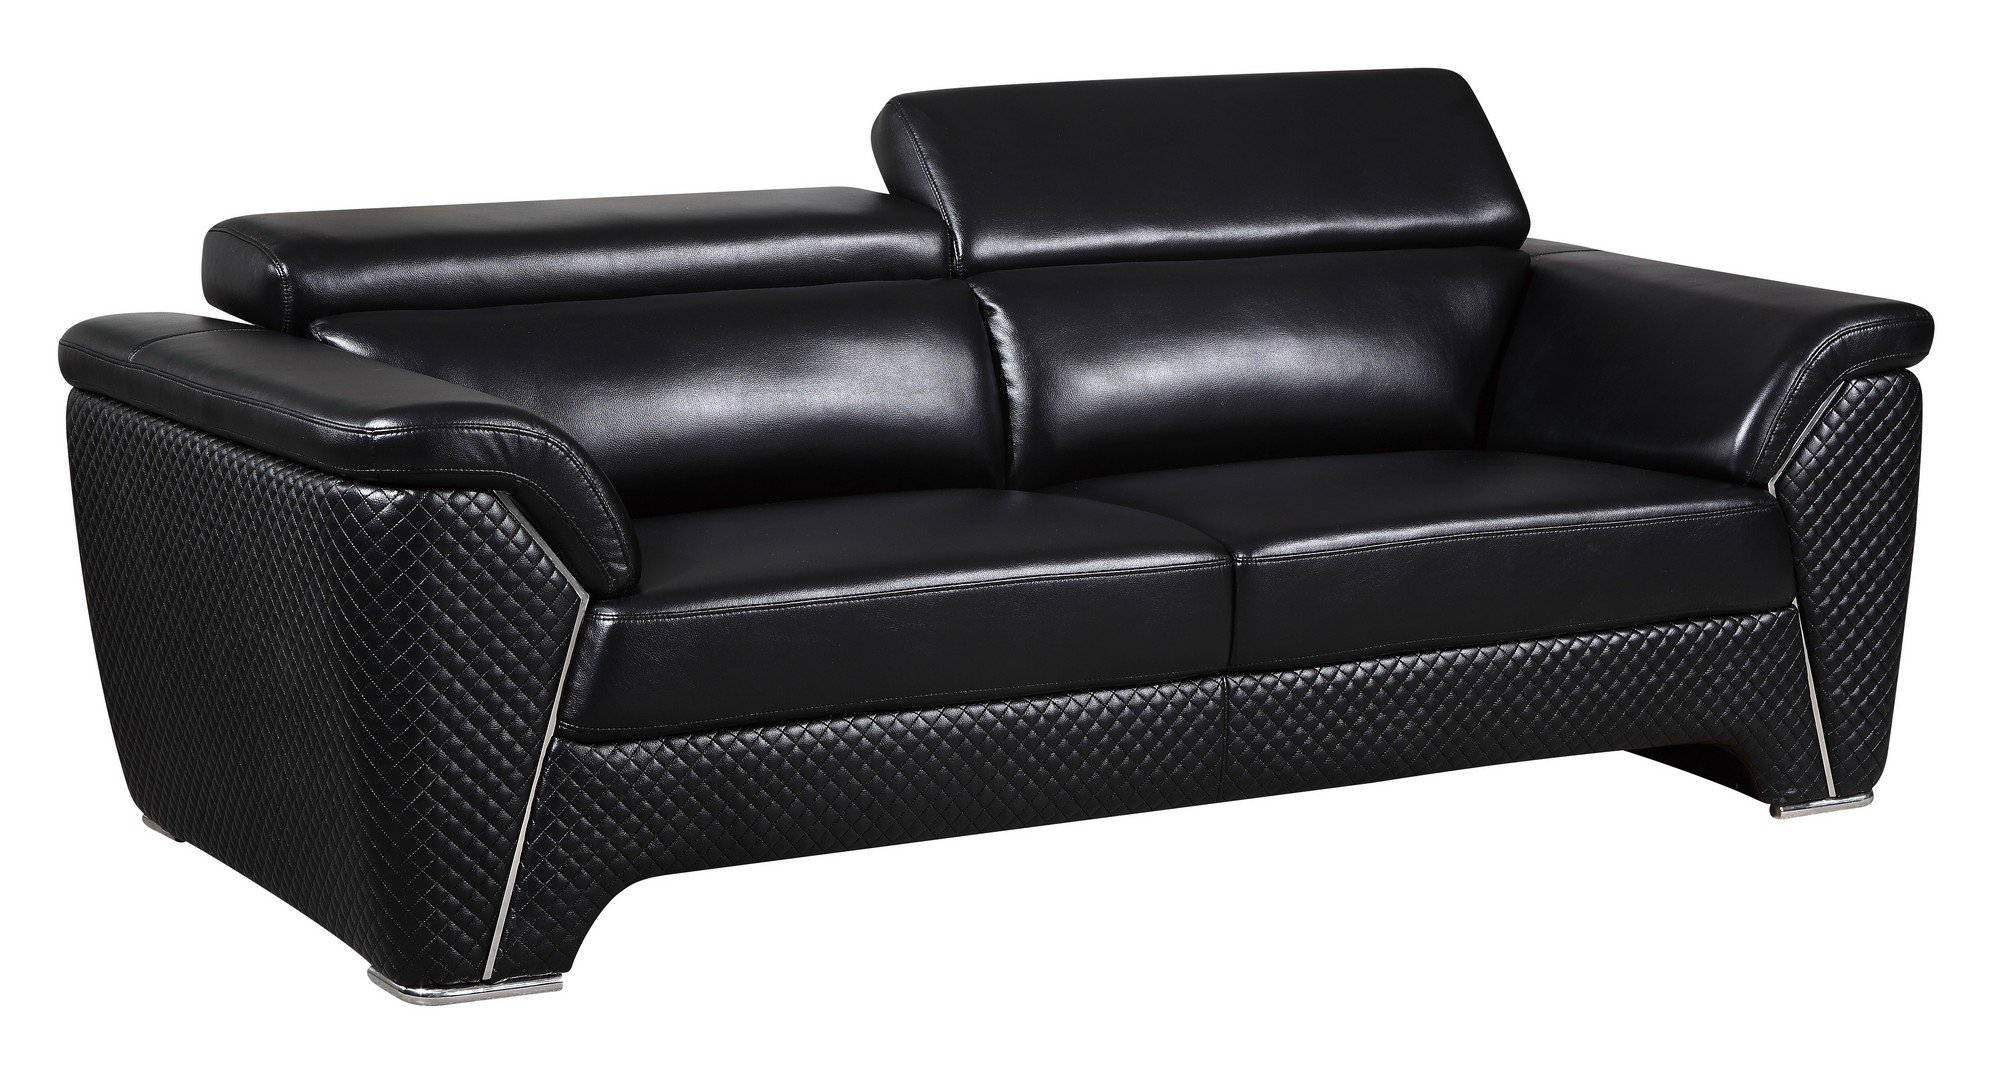 U8190 Black Leather Gel Sofa By Global Furniture: loveseat black